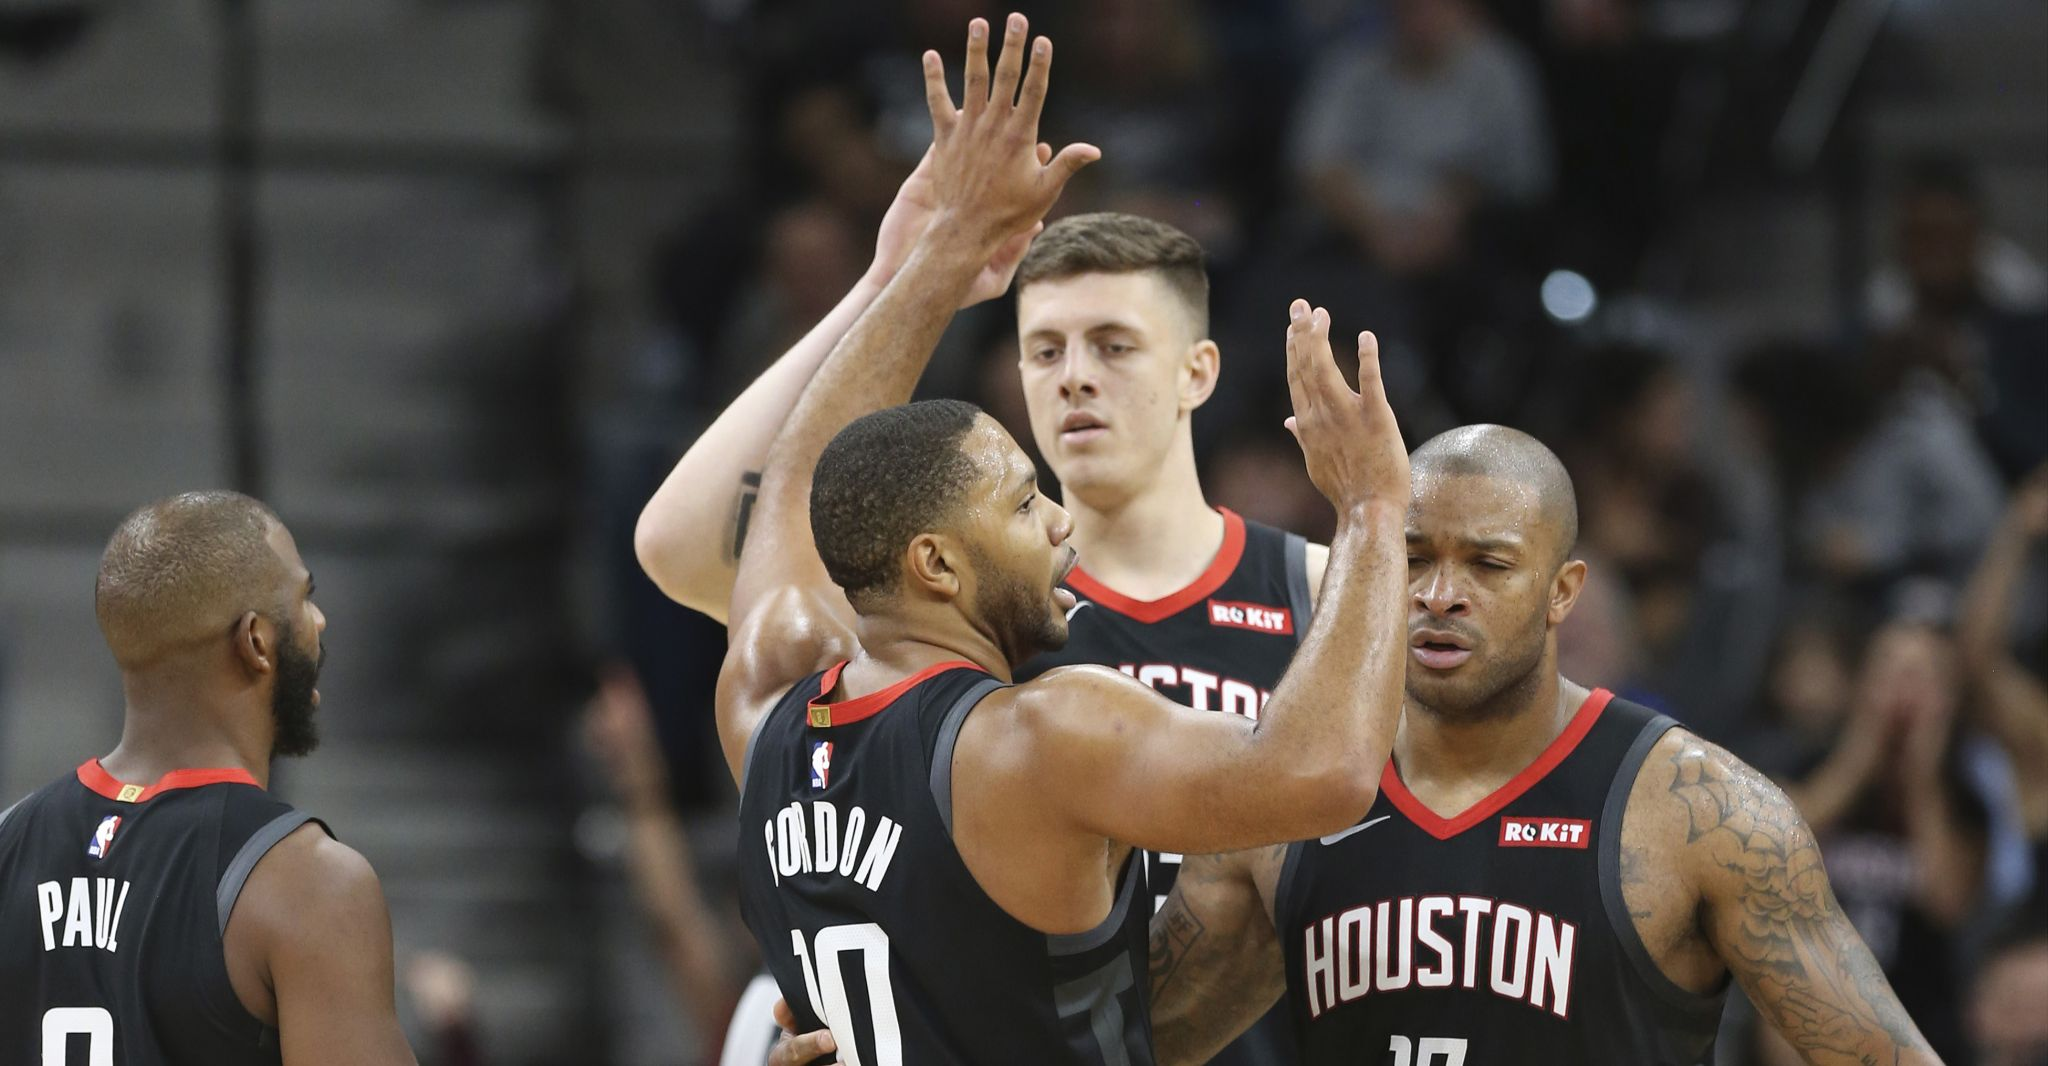 638a739bd94 Rockets blast Spurs to end 4-game losing streak - Houston Chronicle